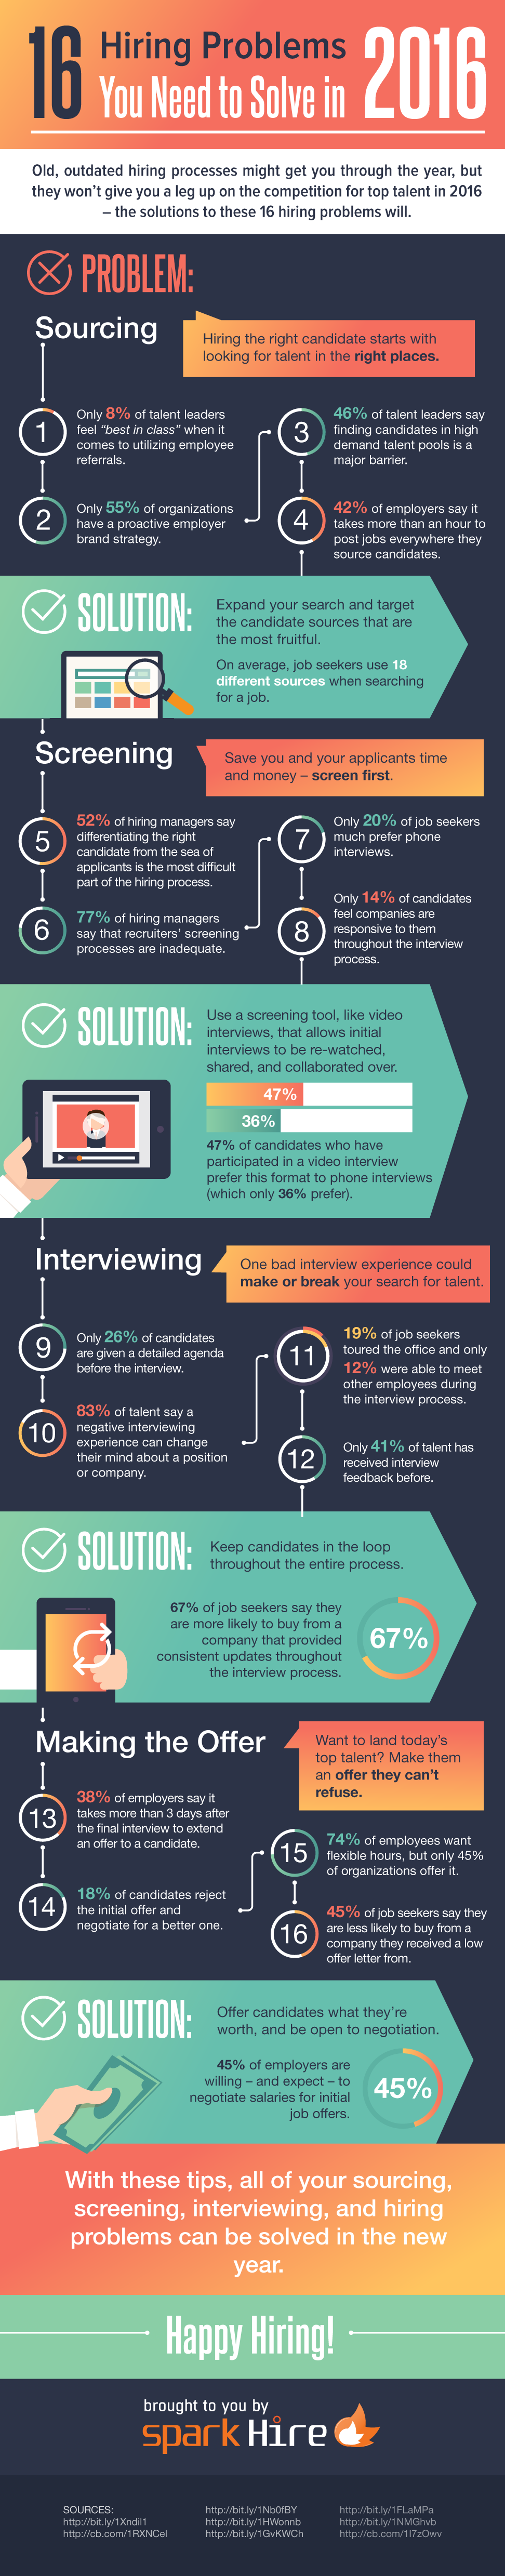 Infographic Your 7 Biggest Hiring Problems